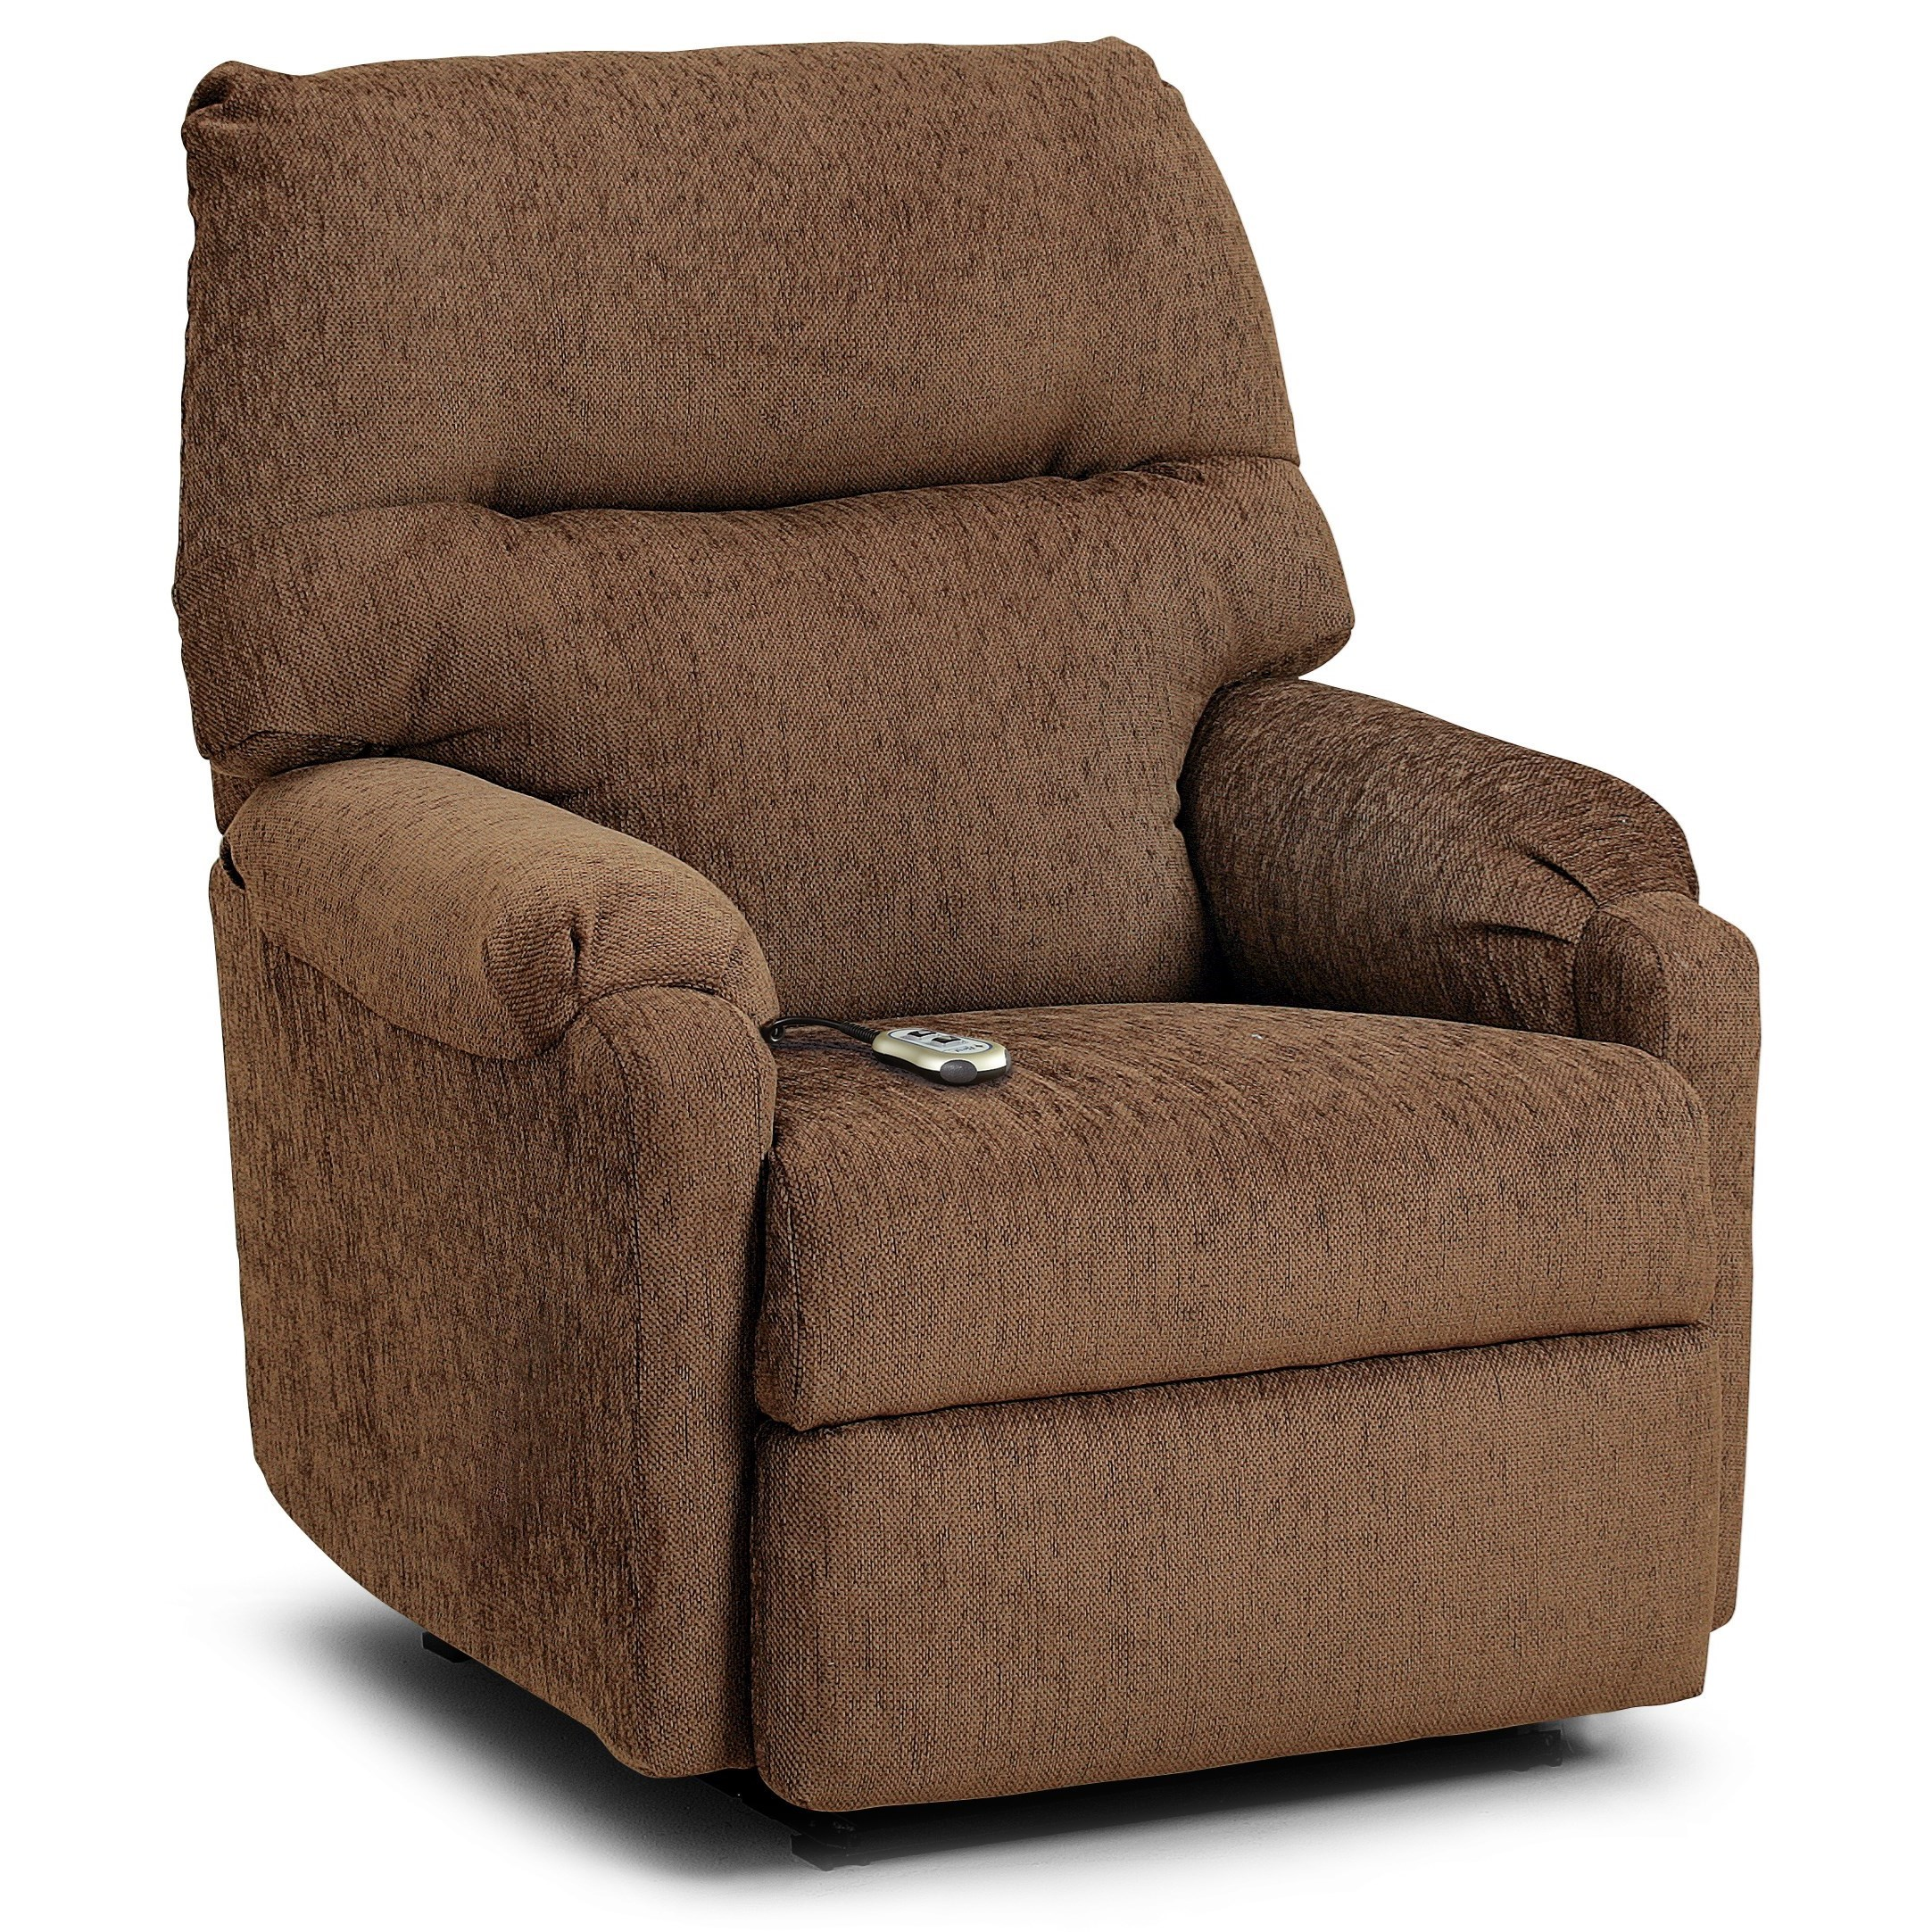 Best Home Furnishings JoJo Lift Recliner - Item Number: 1AW31